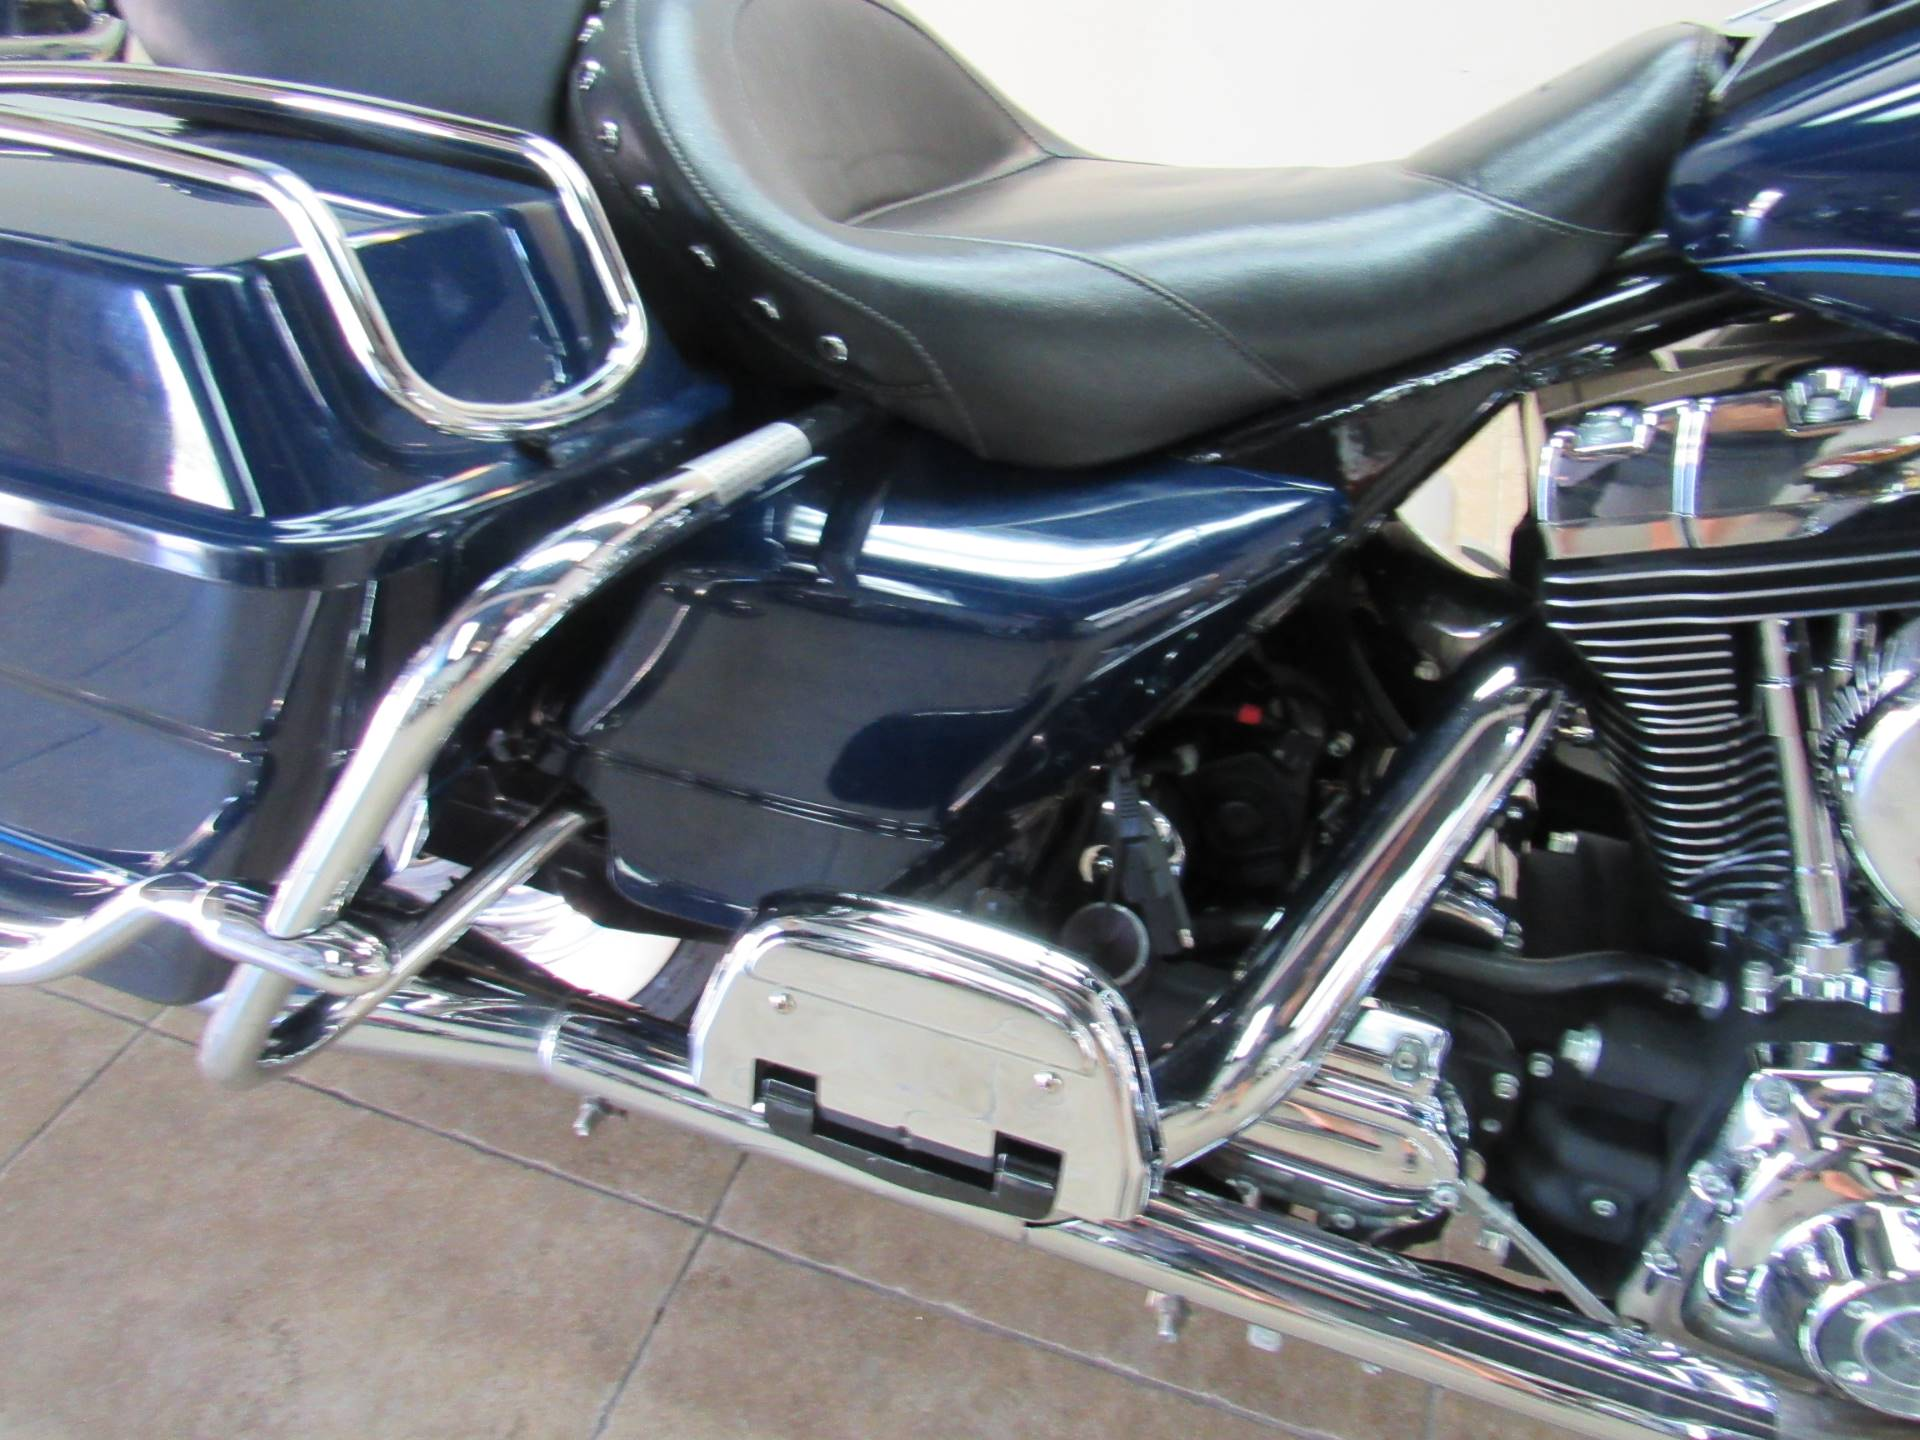 2004 Harley-Davidson Peace Officer Special Edition in Temecula, California - Photo 20